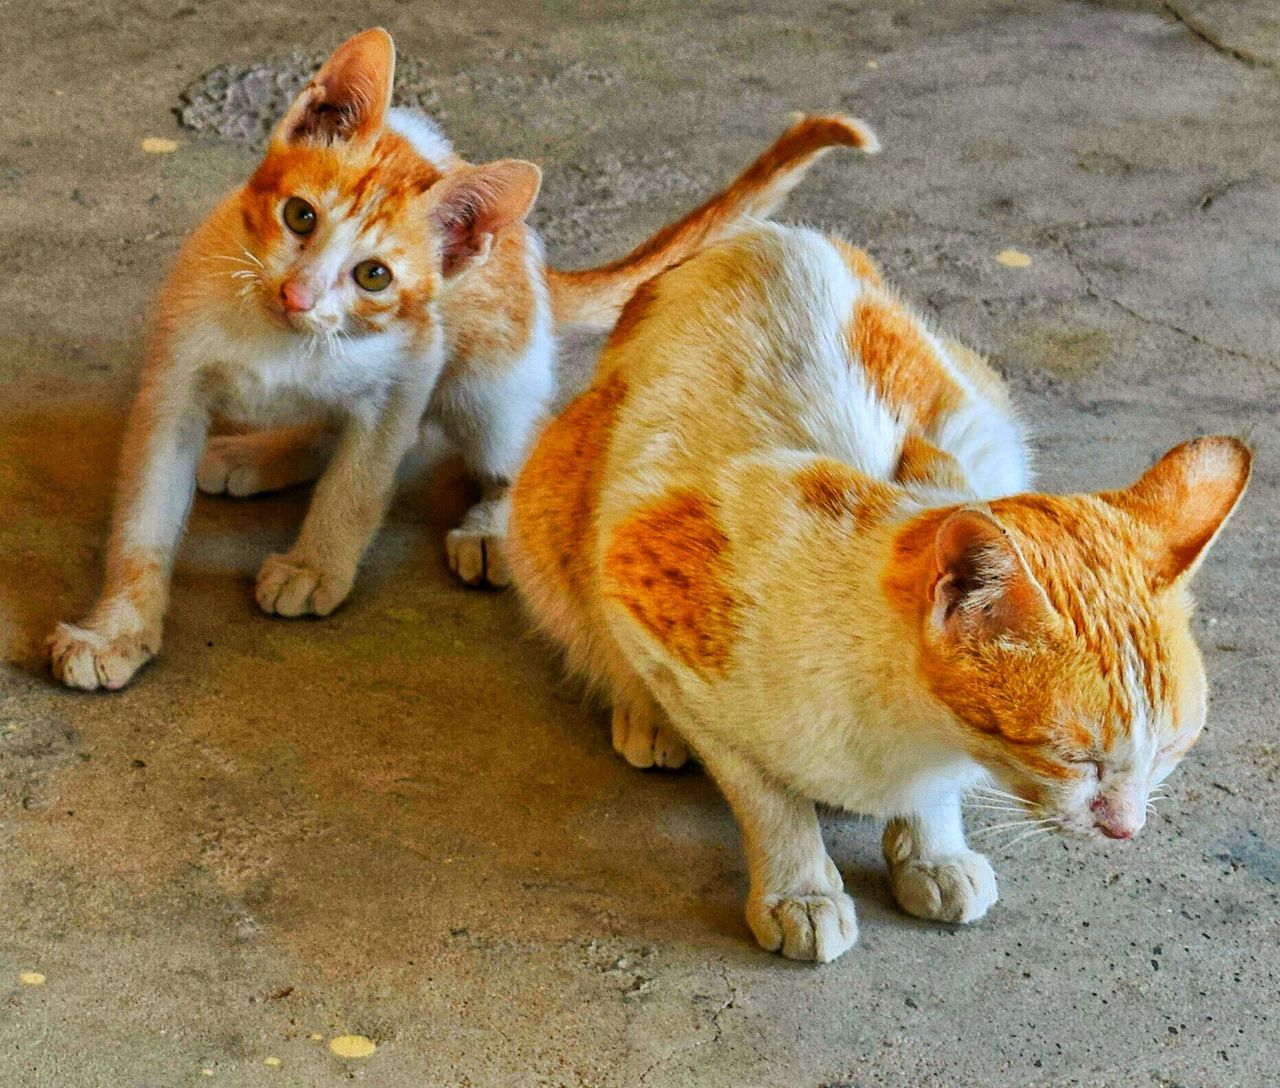 Animal Themes Domestic Animals Pets Young Animal No People Domestic Cat Cute Animals One Animal Kitty Cat Cat Eyes Cute Colorful Golden Gorgeous ♥ Beauty Cat Photography Best  Close-up Cats Of EyeEm Cat Lovers Cat Kitten 🐱 Cute Pets Cat♡ White Color